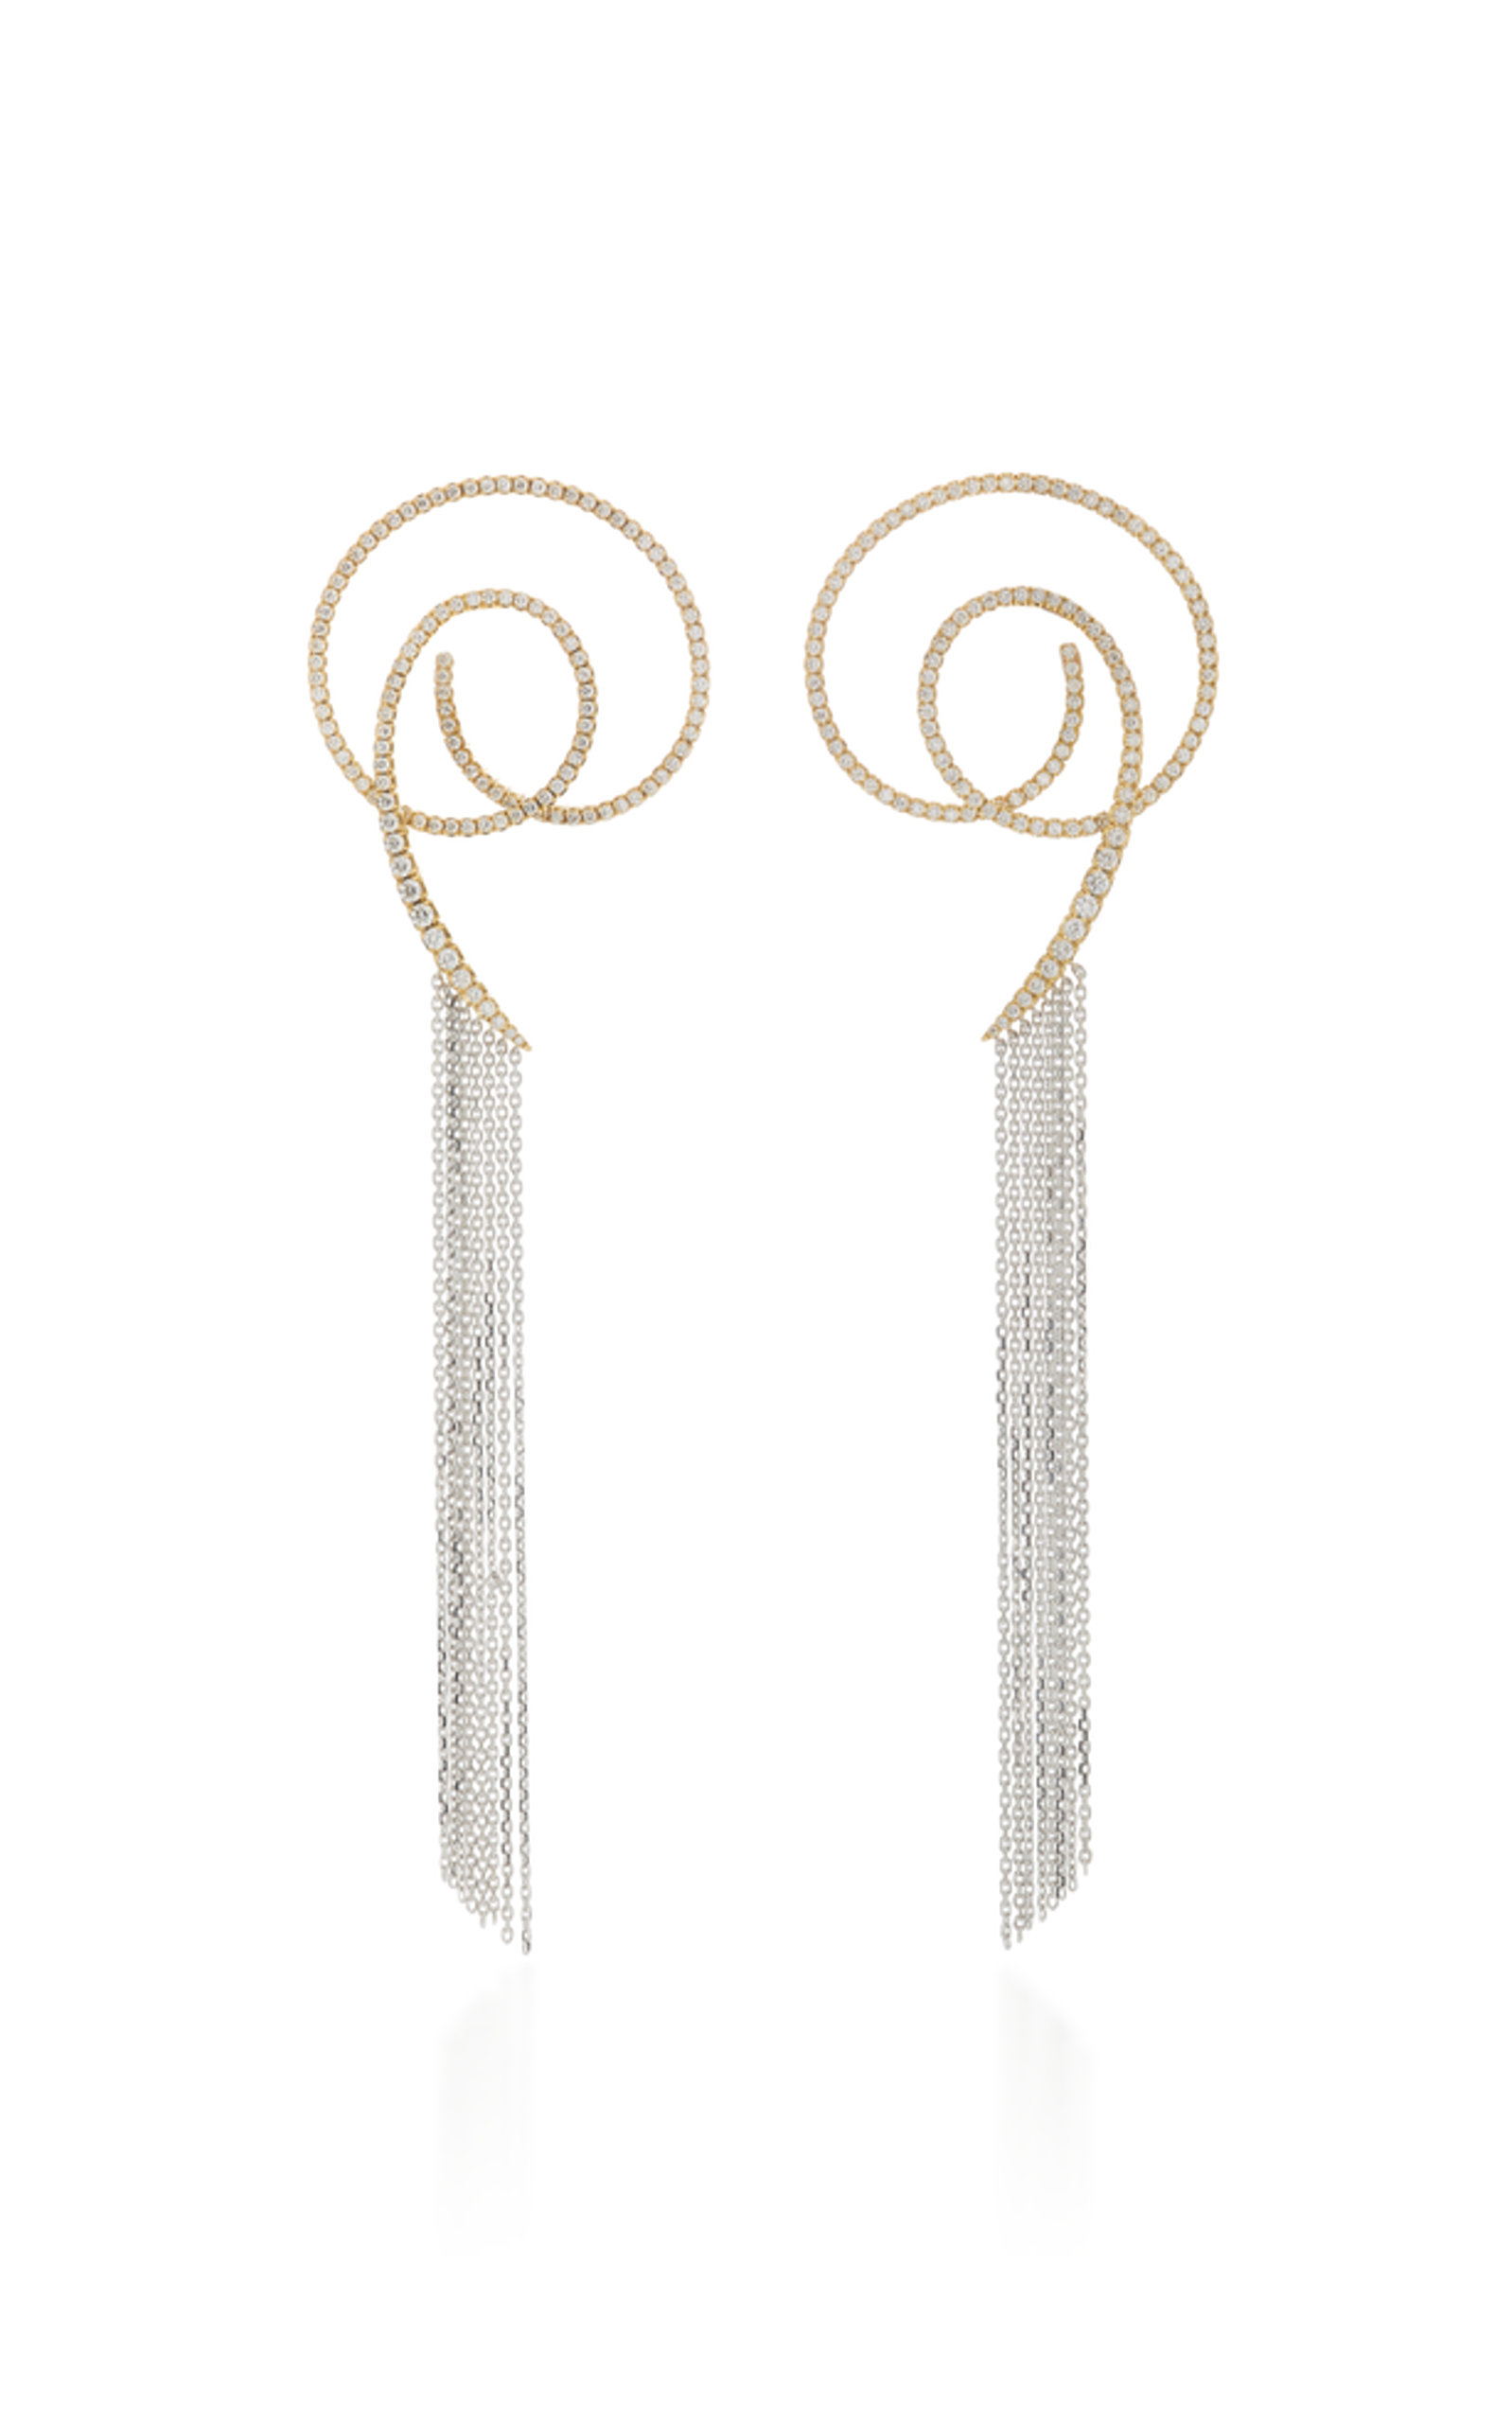 AMANTE LOOPED EARRINGS WITH FRINGE